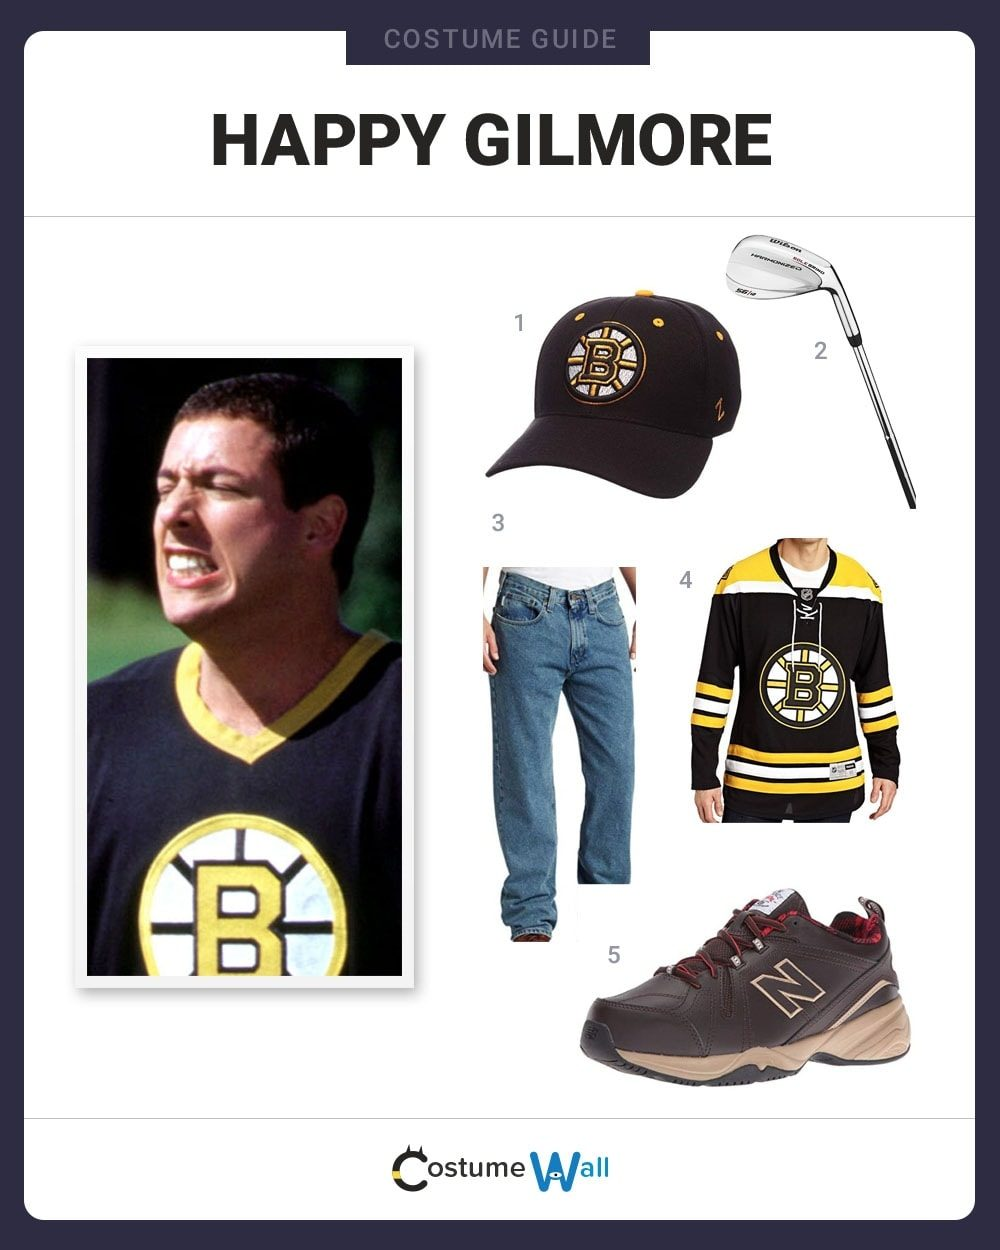 Happy Gilmore Costume Guide